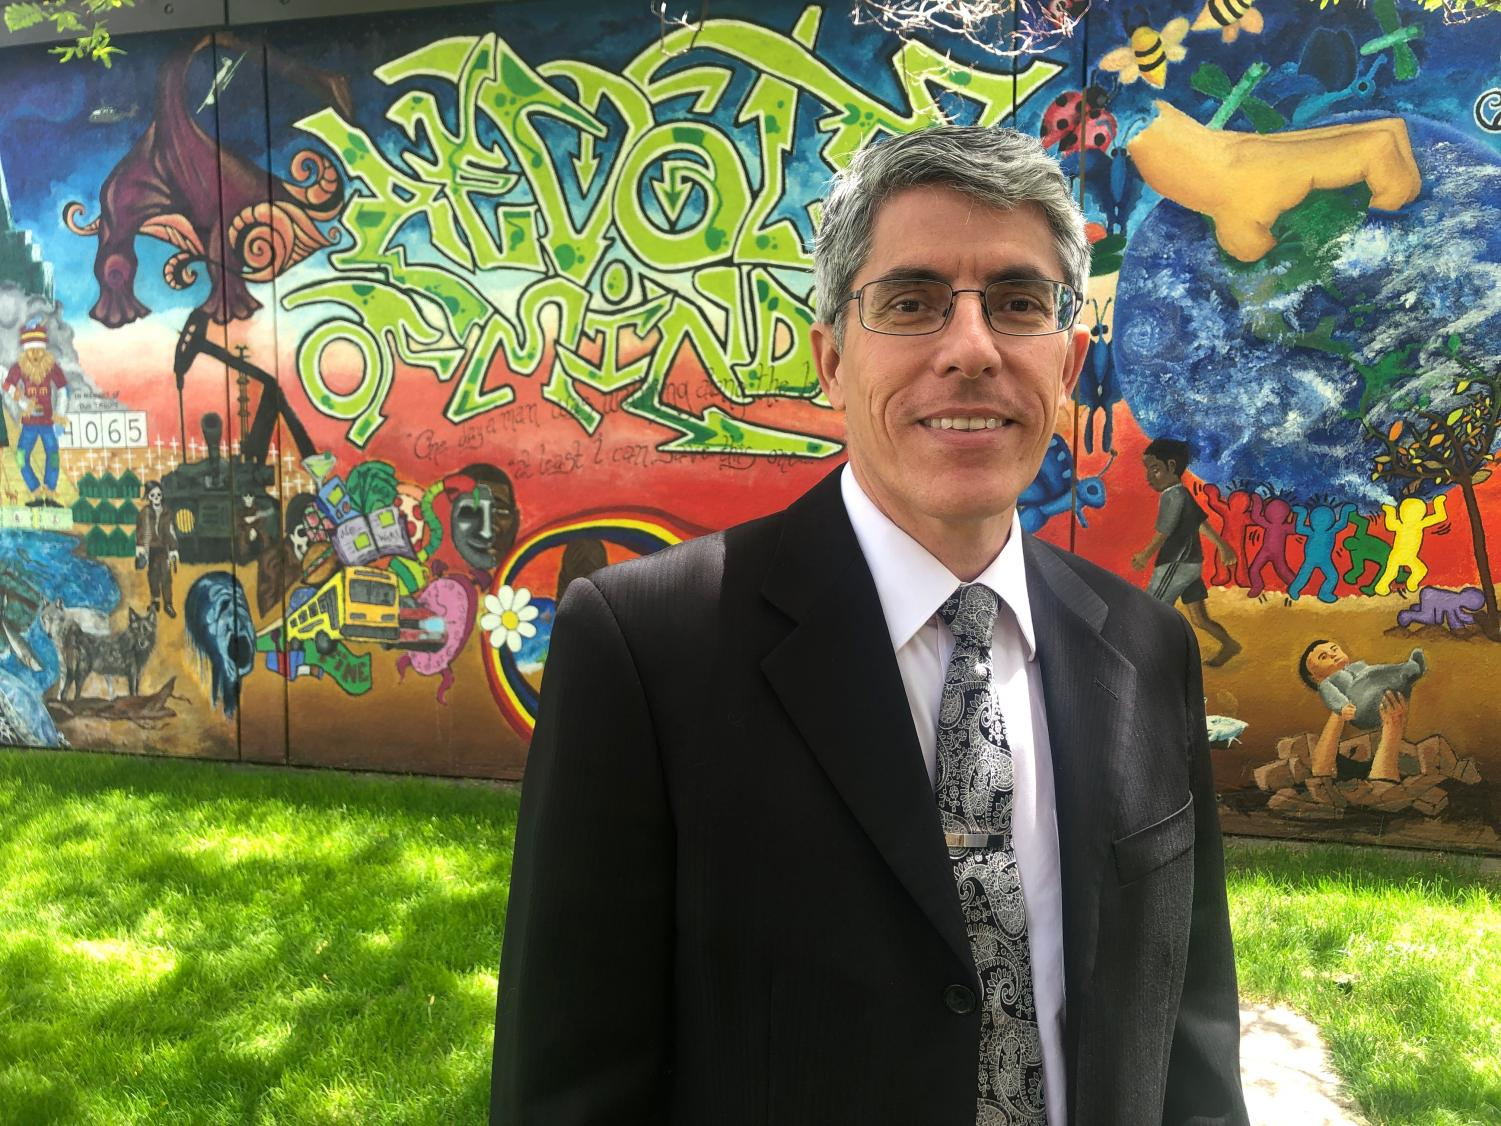 Daniel Smith, De Anza College's new dean of creative arts, has been passionate about the arts since college. He oversees art, dance, film and television, music, photography and theater.